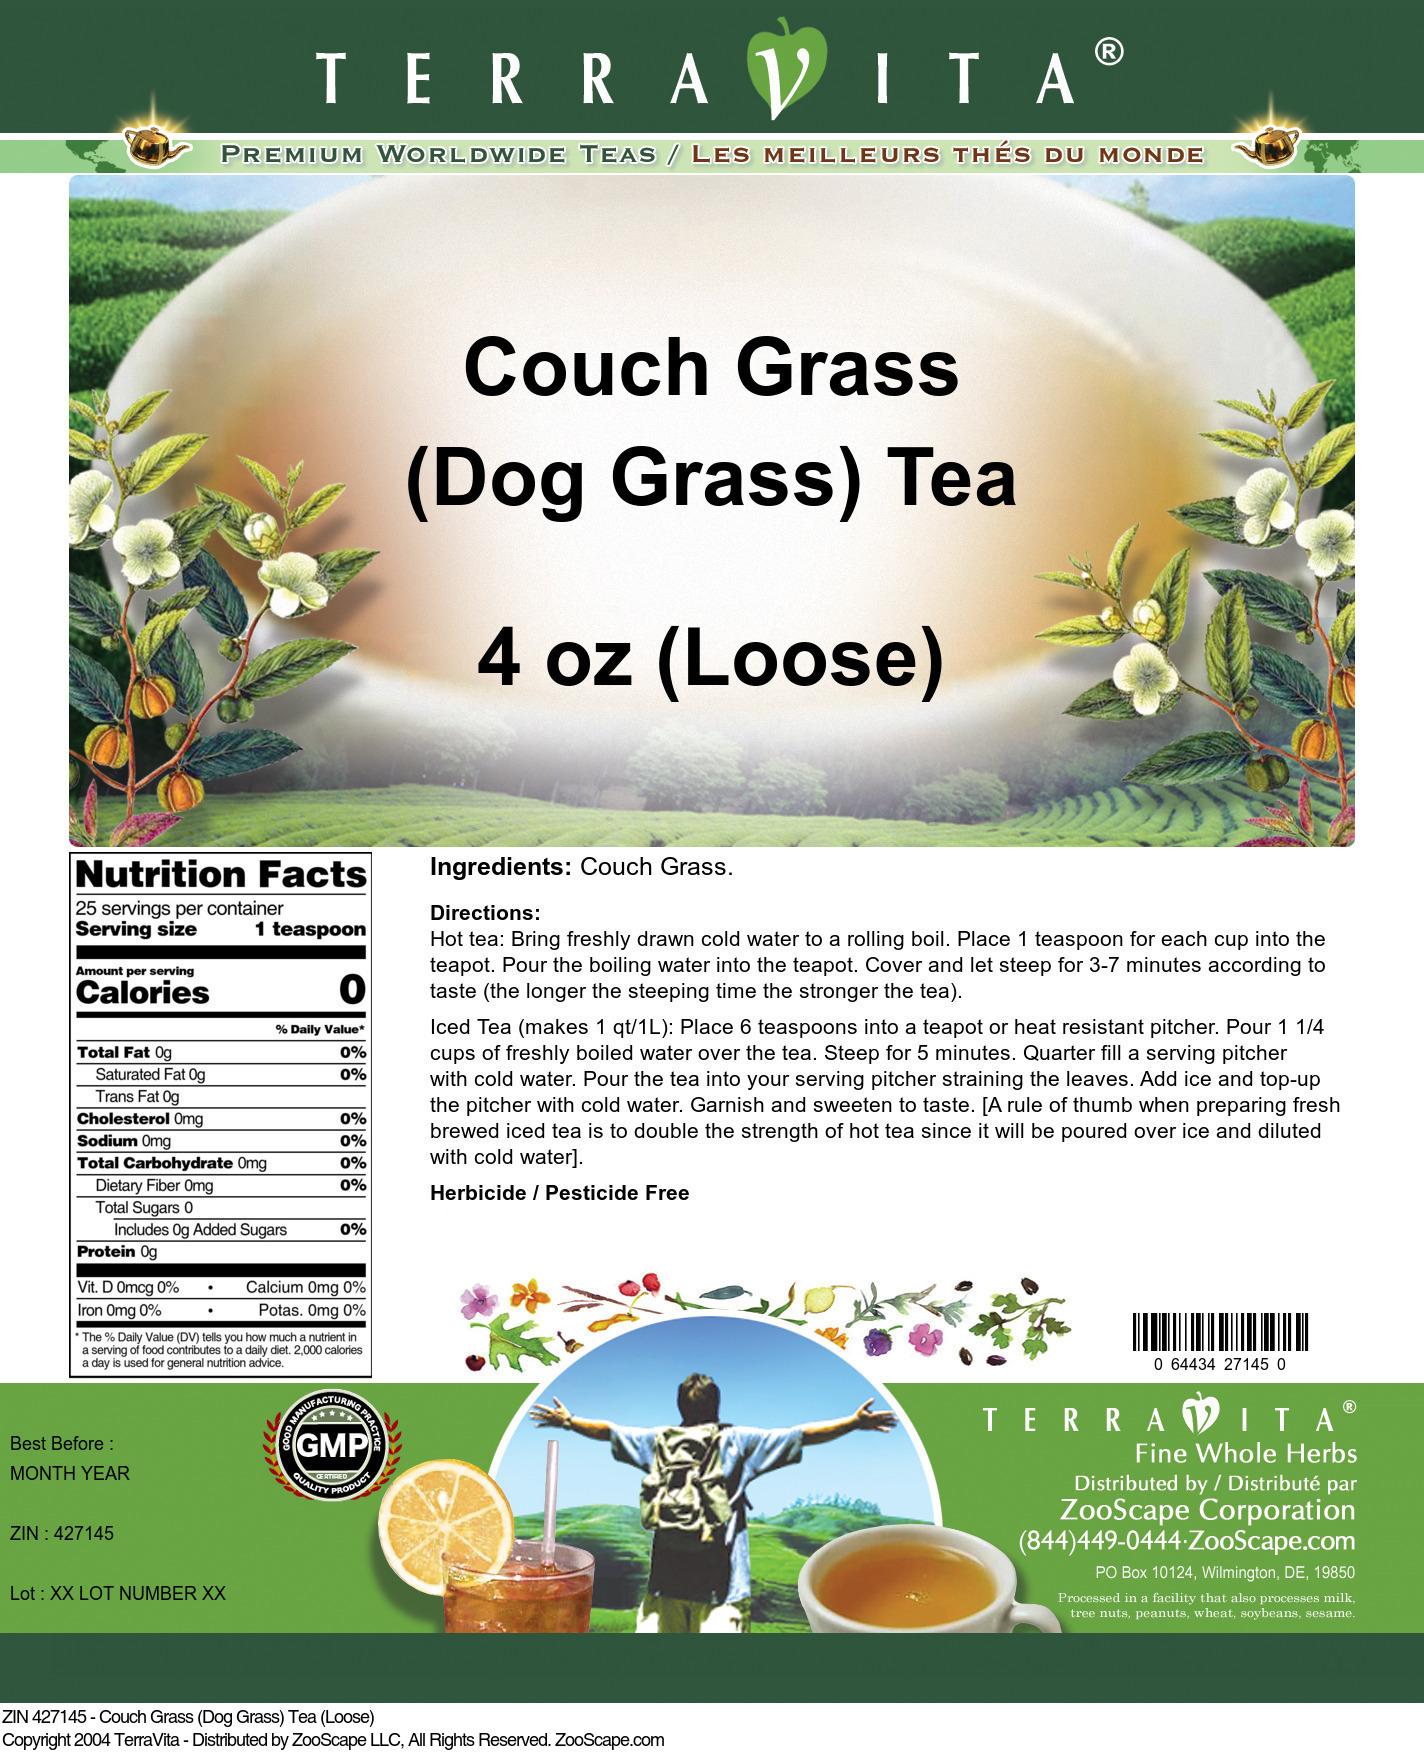 Couch Grass (Dog Grass) Tea (Loose) - Label